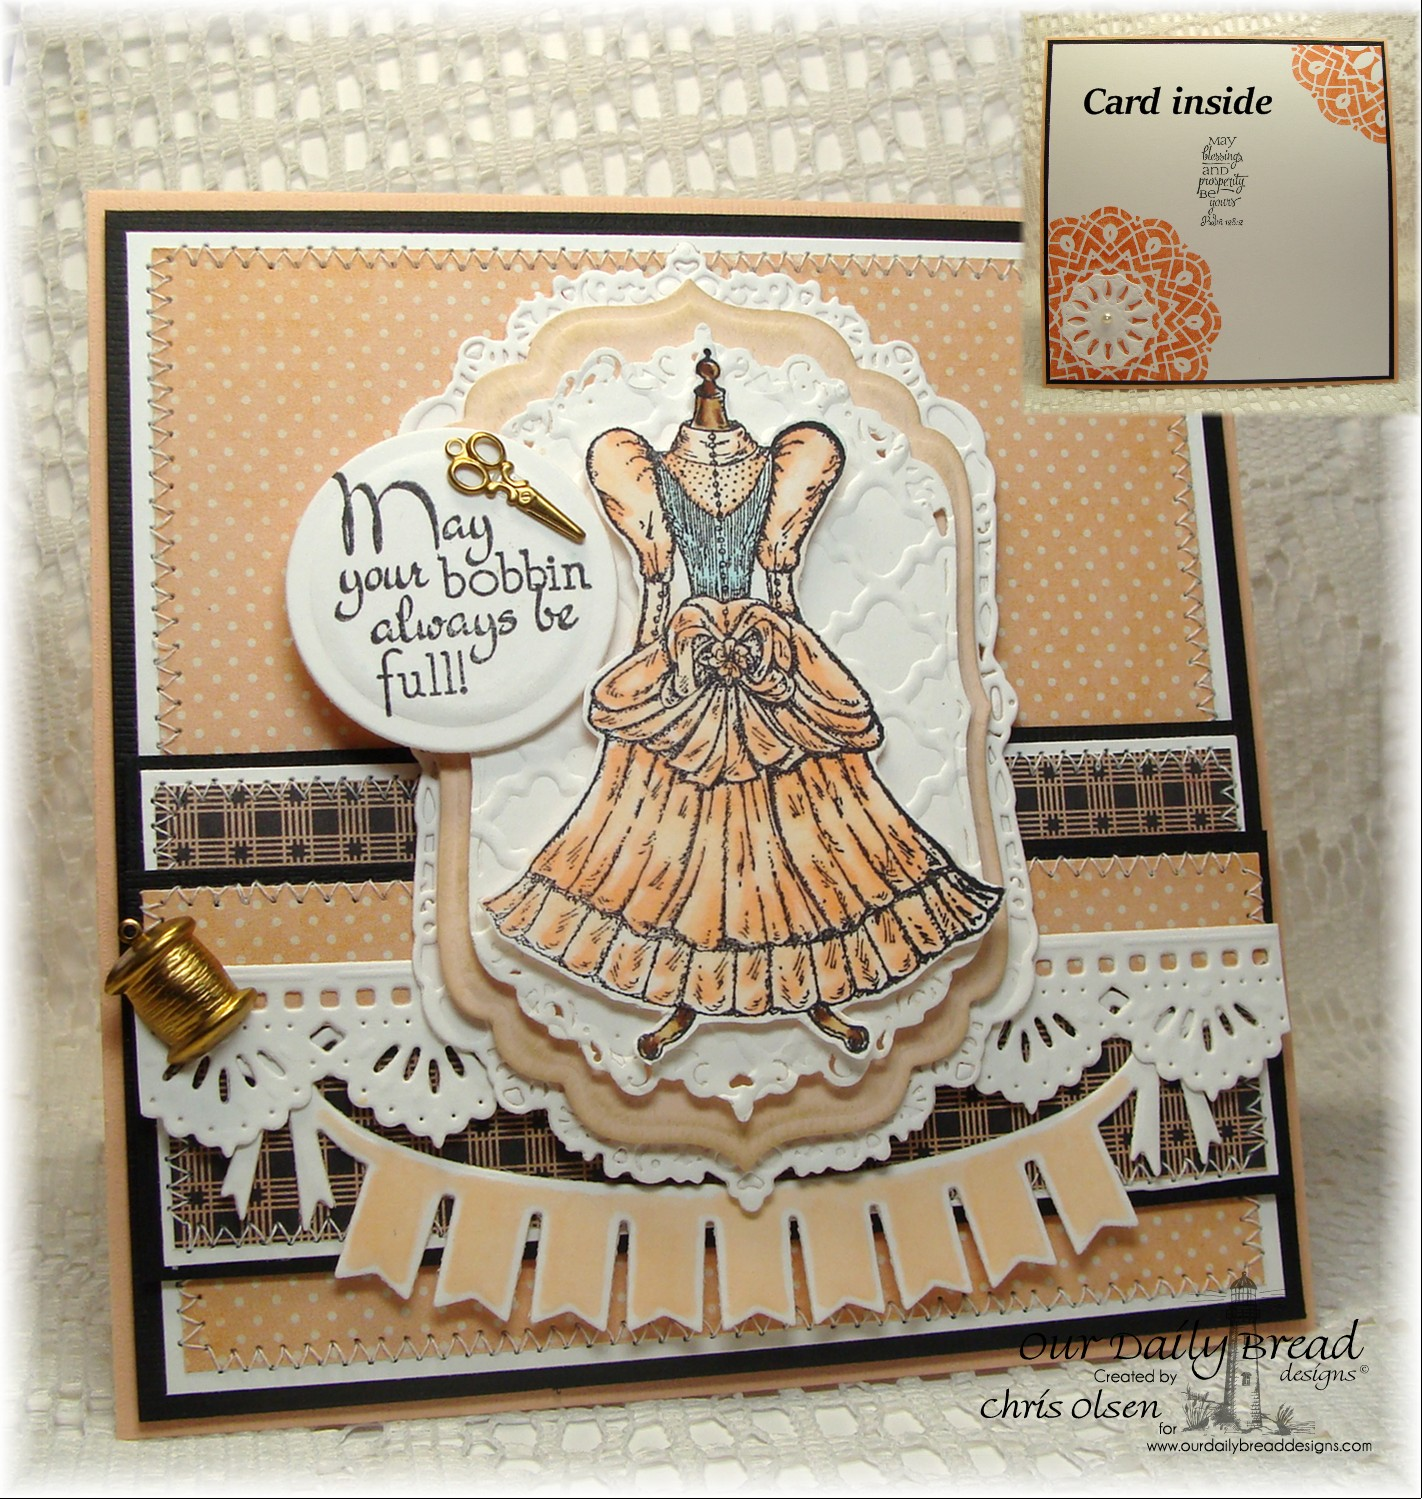 Stamps - Our Daily Bread Designs Birthday Doily, Felicity, Sewing, ODBD Custom Beautiful Borders Dies, ODBD Custom Pennant Swag Die, ODBD Custom Recipe Card and Tags Dies